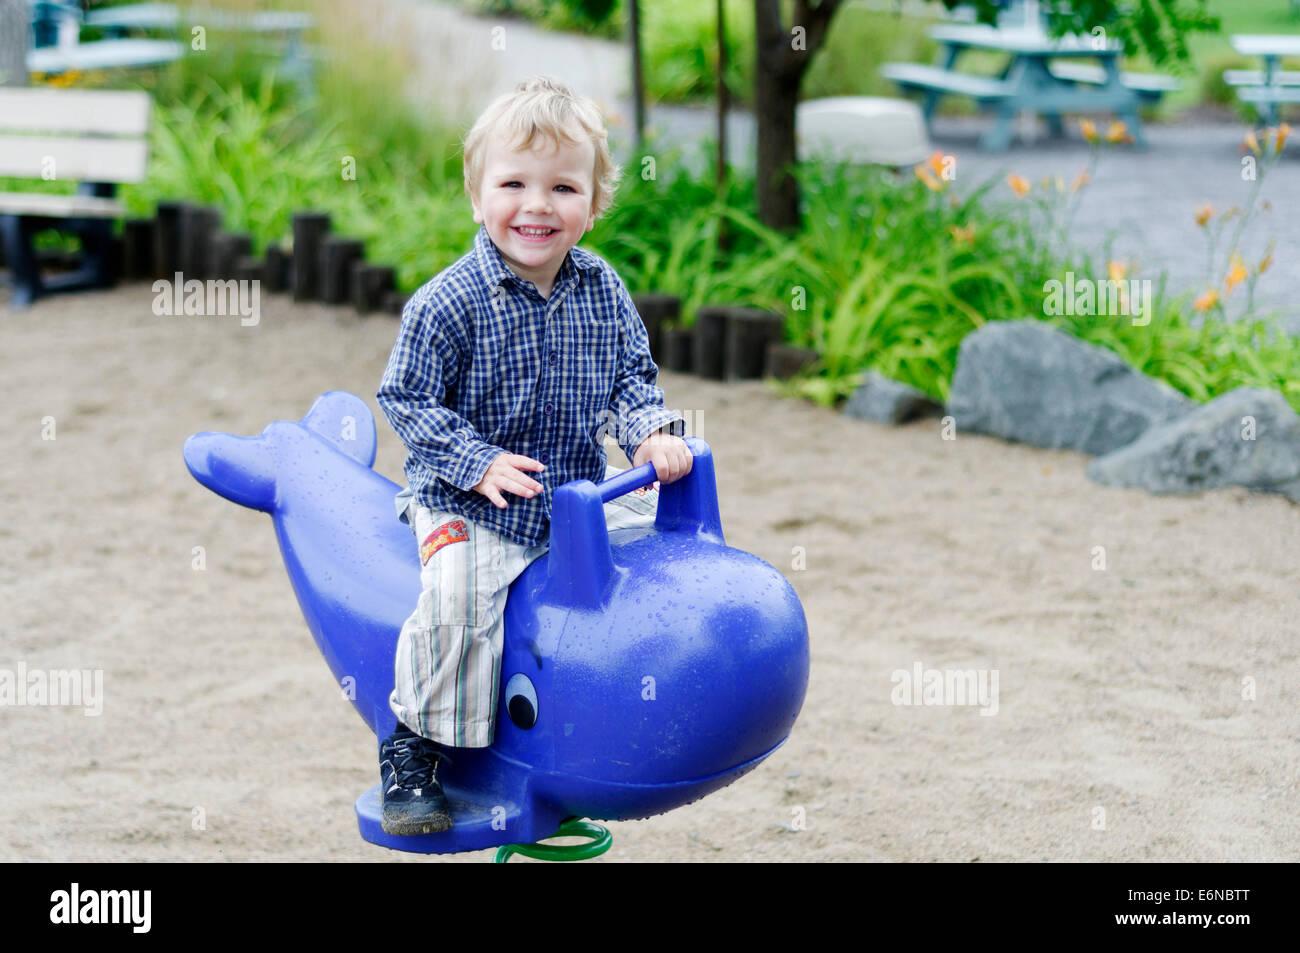 A smiling happy young boy playing in a playground - Stock Image